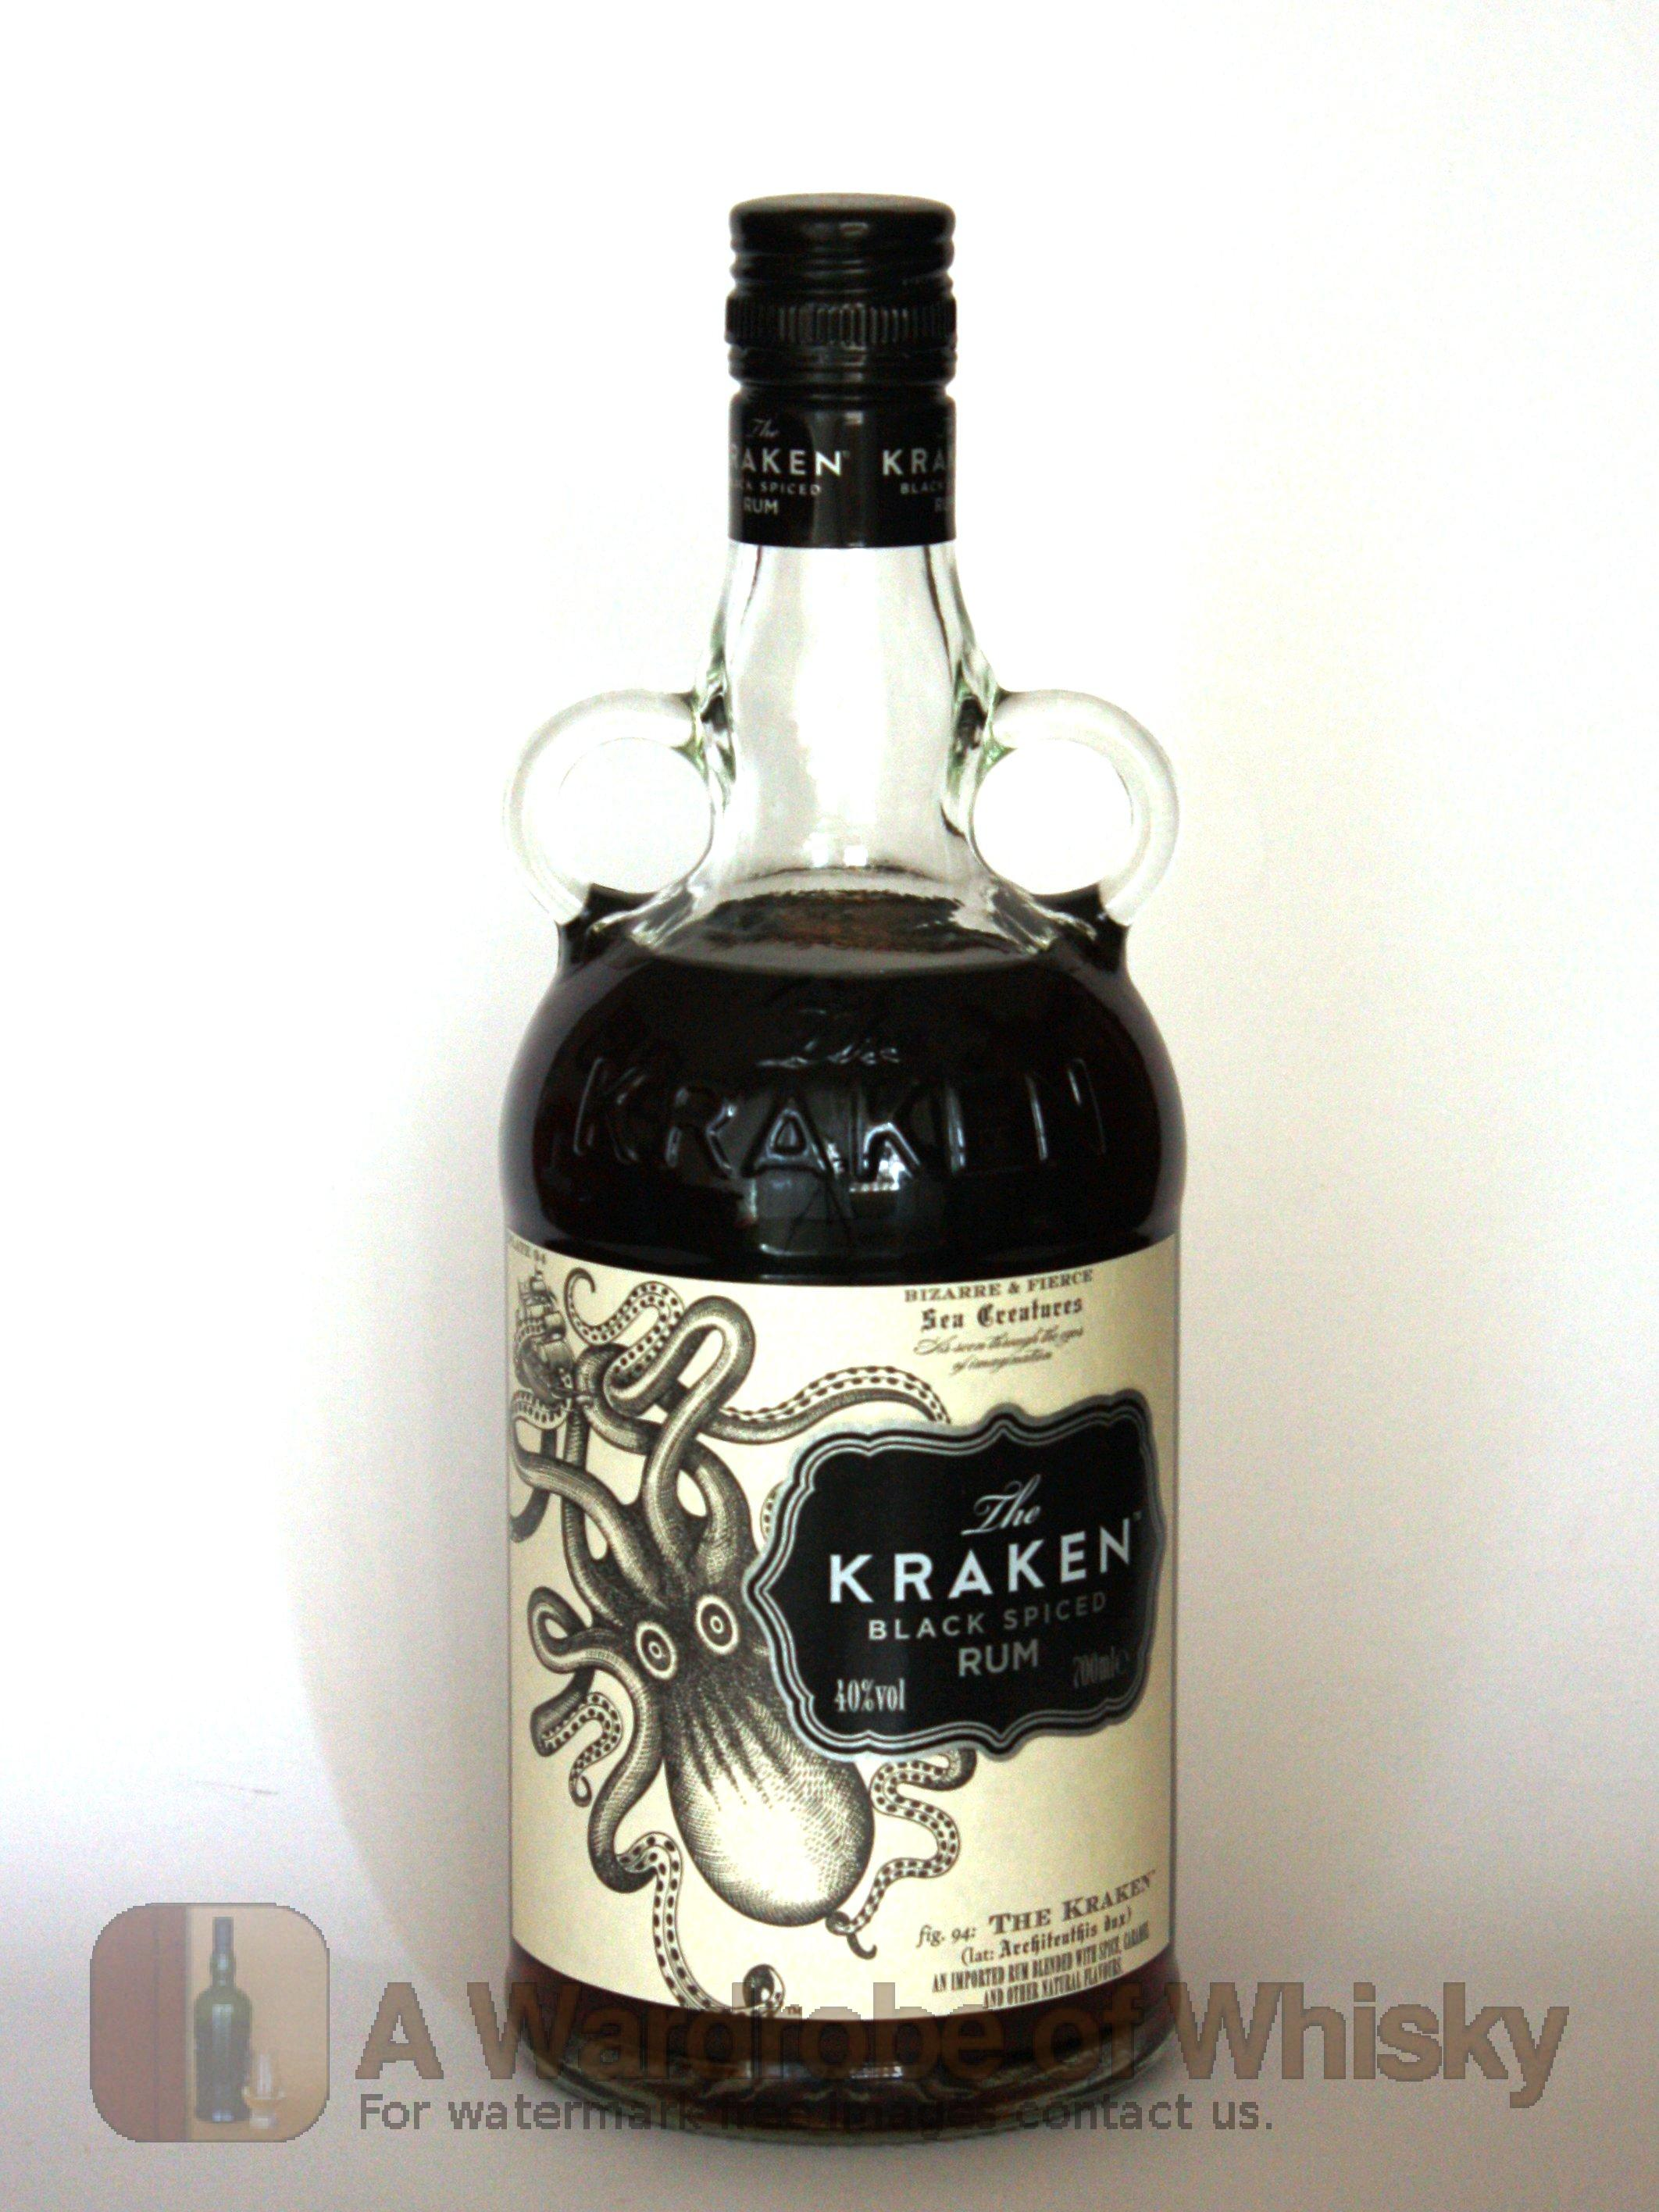 Buy kraken black spiced rum rum other rums whisky - Kraken rum pictures ...